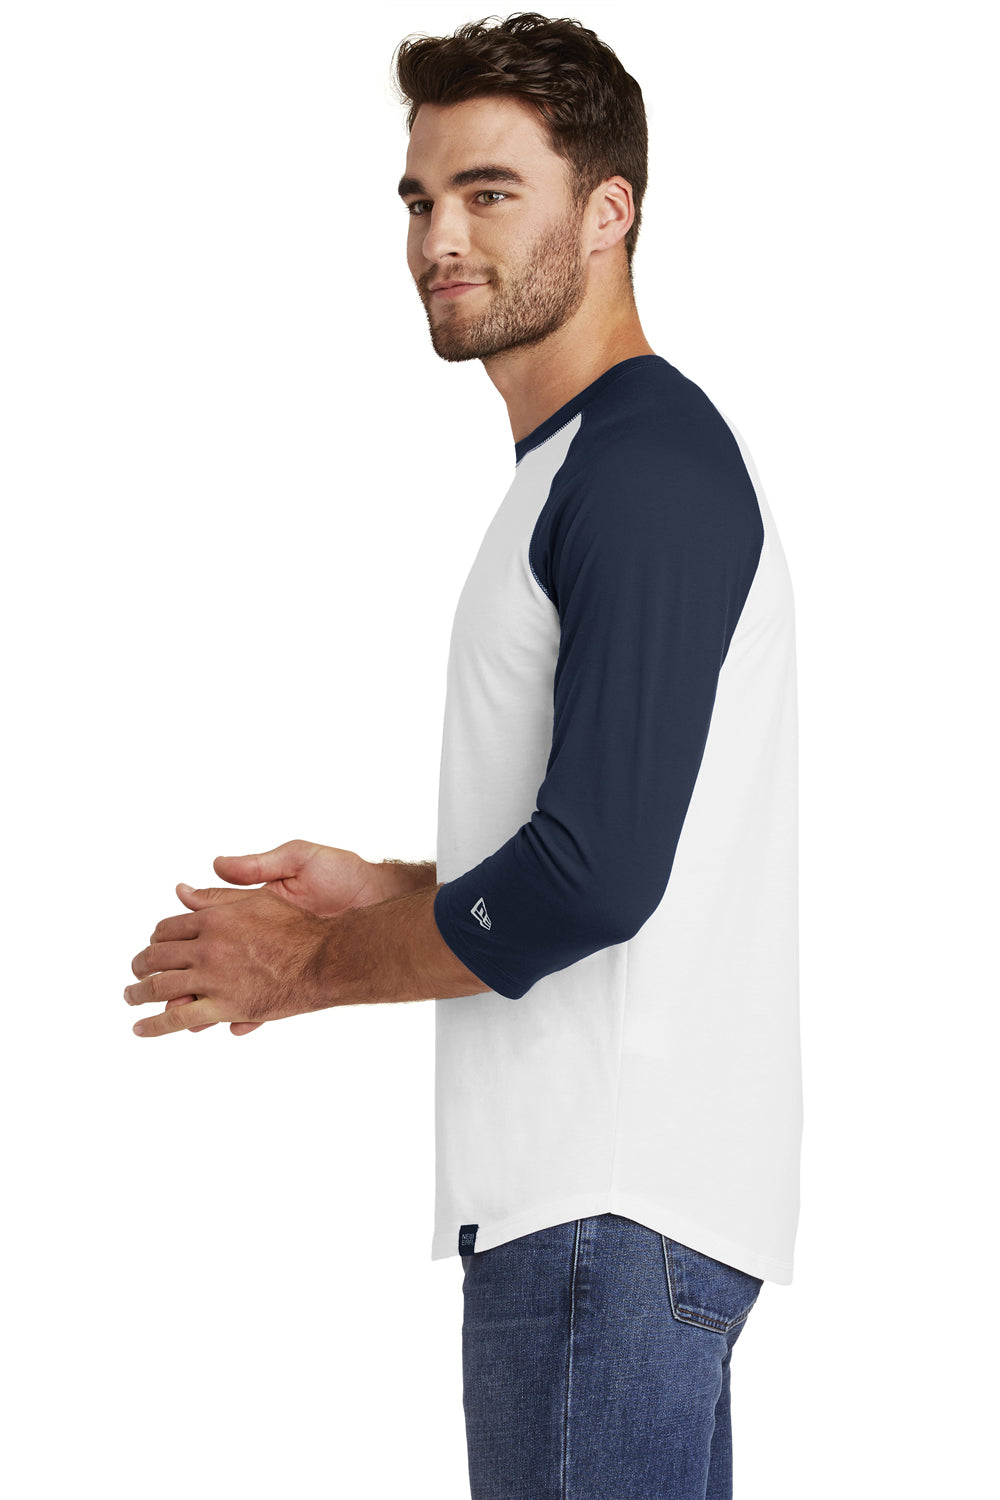 New Era NEA104 Mens Heritage 3/4 Sleeve Crewneck T-Shirt Navy Blue/White Side